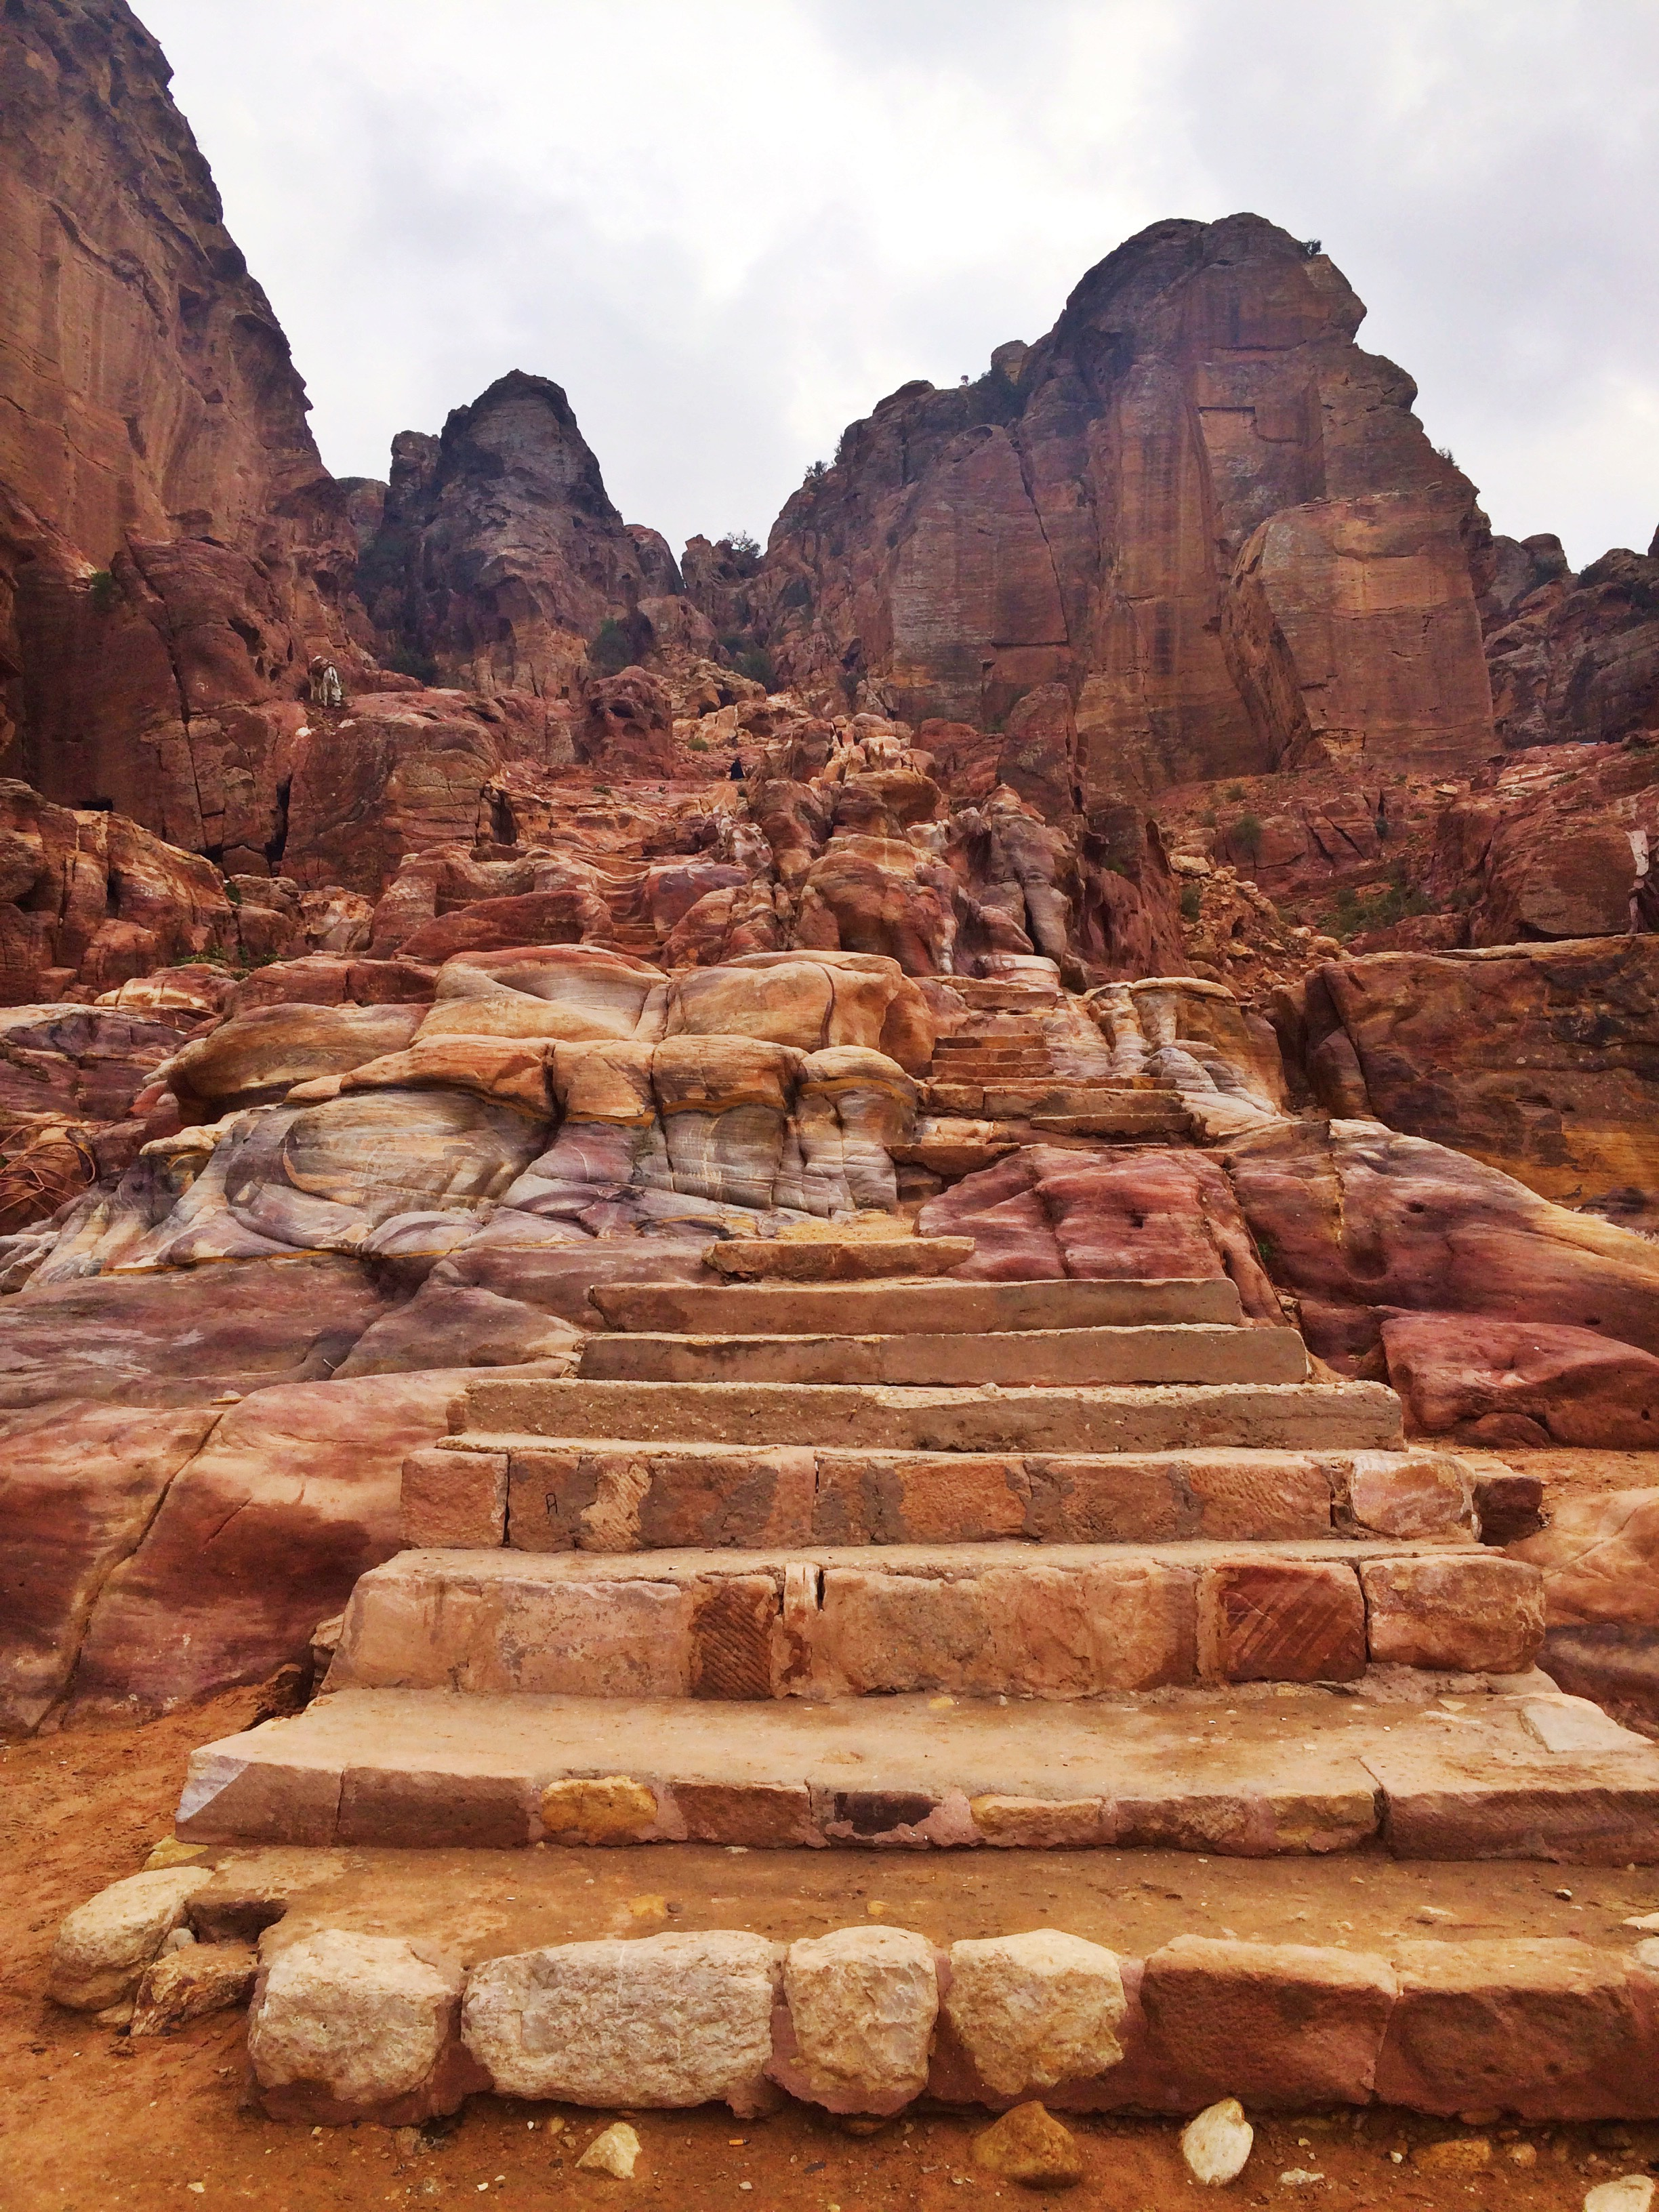 Jordan: Petra Part 1 | Breezing Through